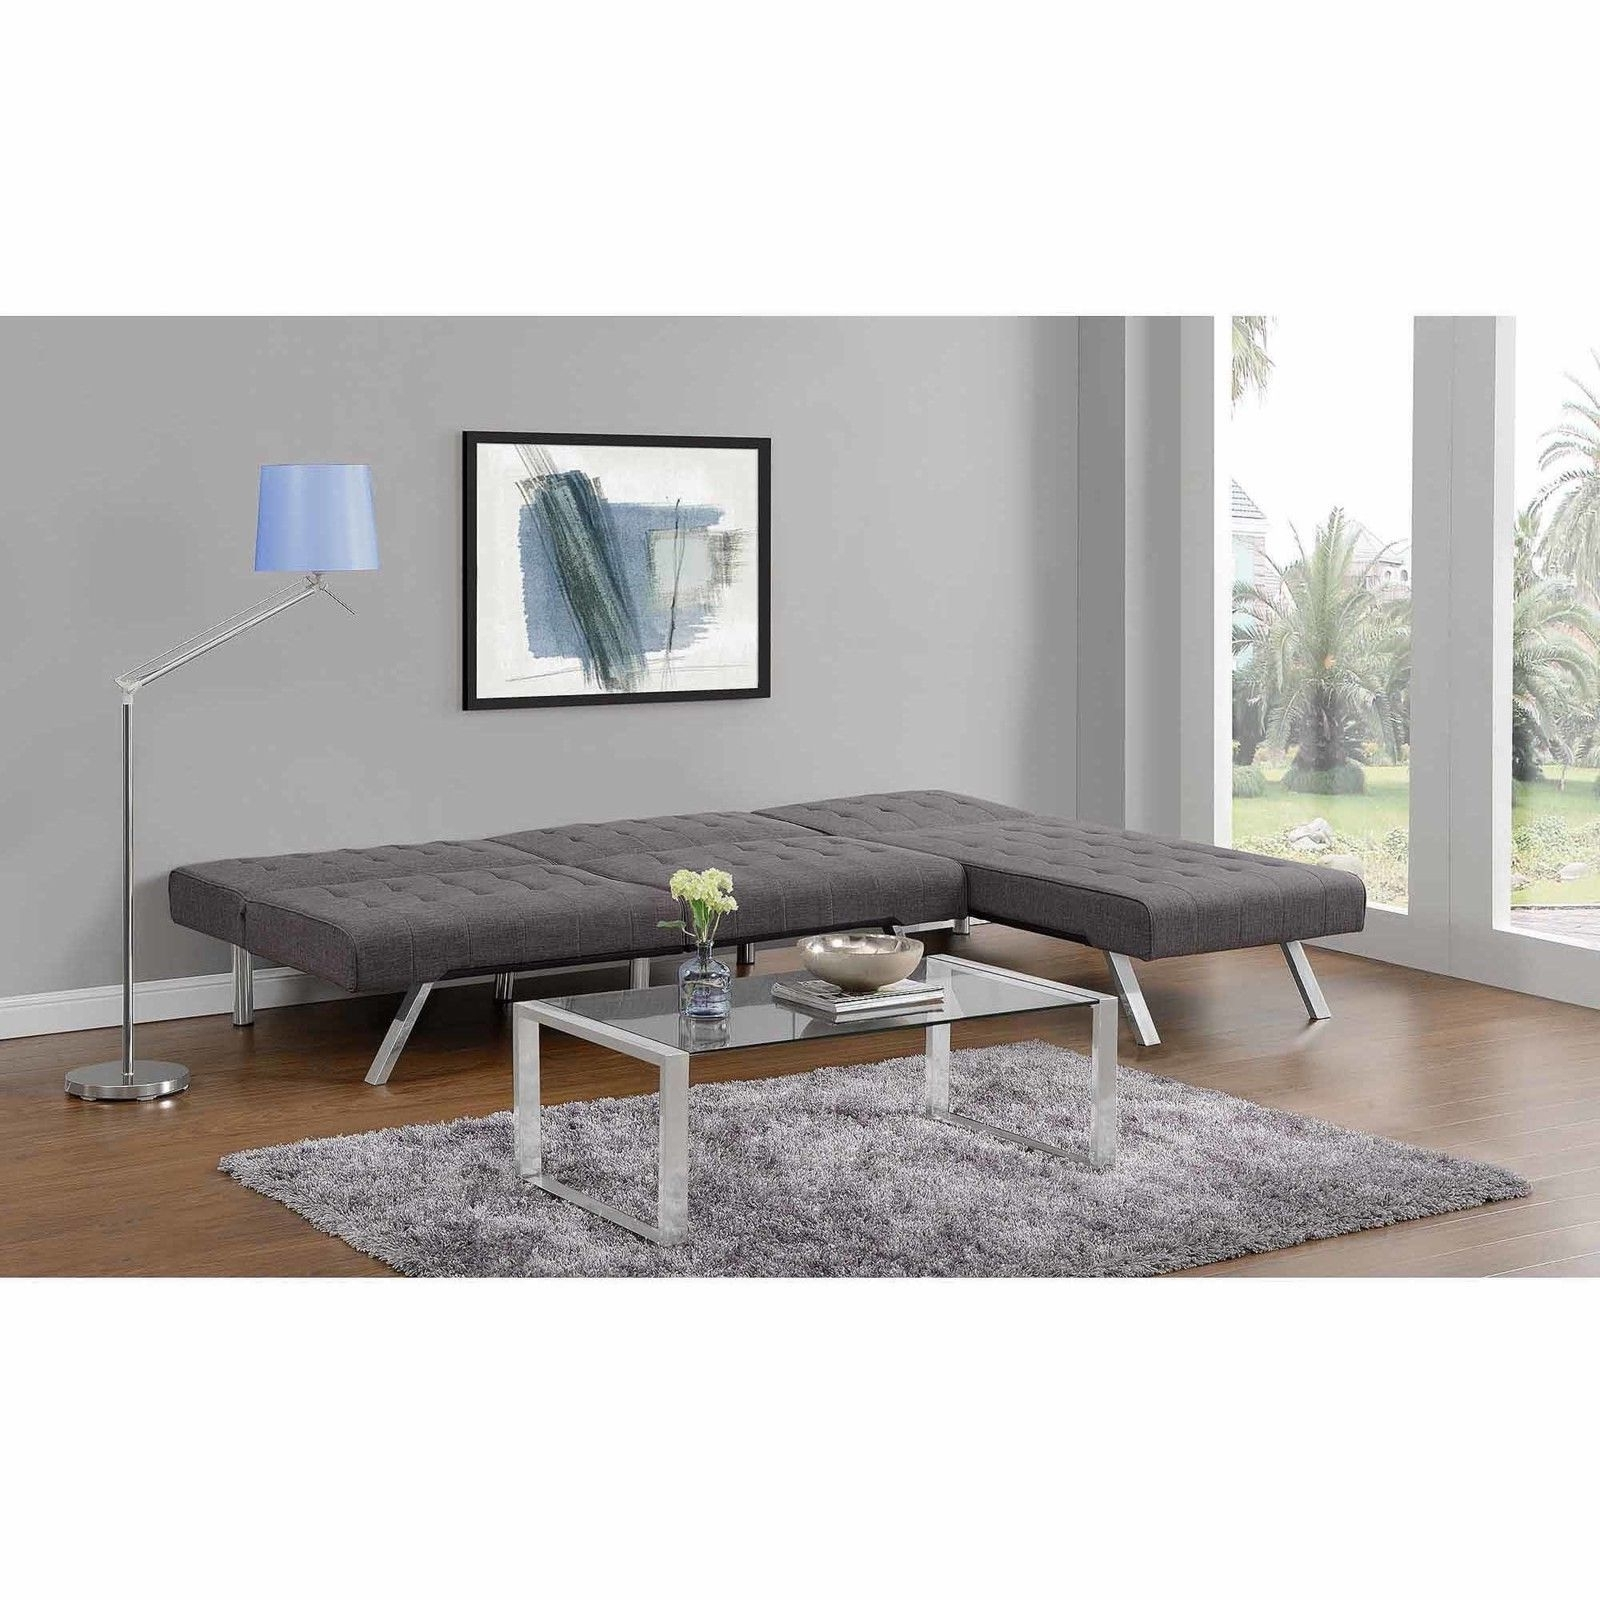 Dhp Emily Linen Chaise Lounger Gray Chair 2024429  (View 3 of 15)